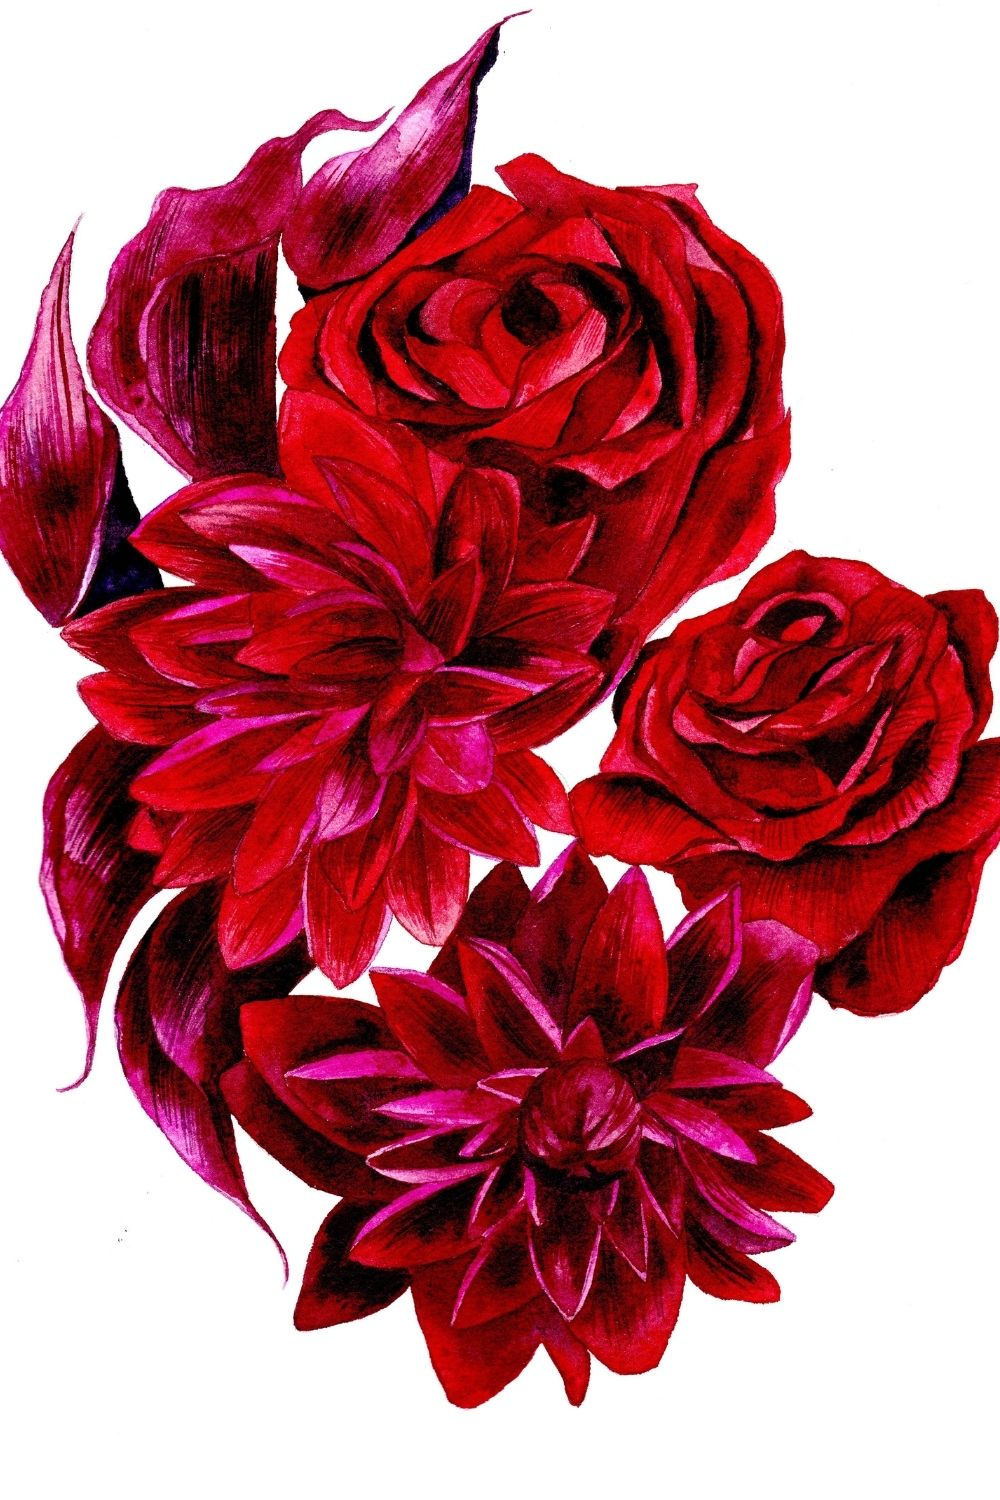 Deep red, crimson and magenta roses and dahlia watercolour painting illustration